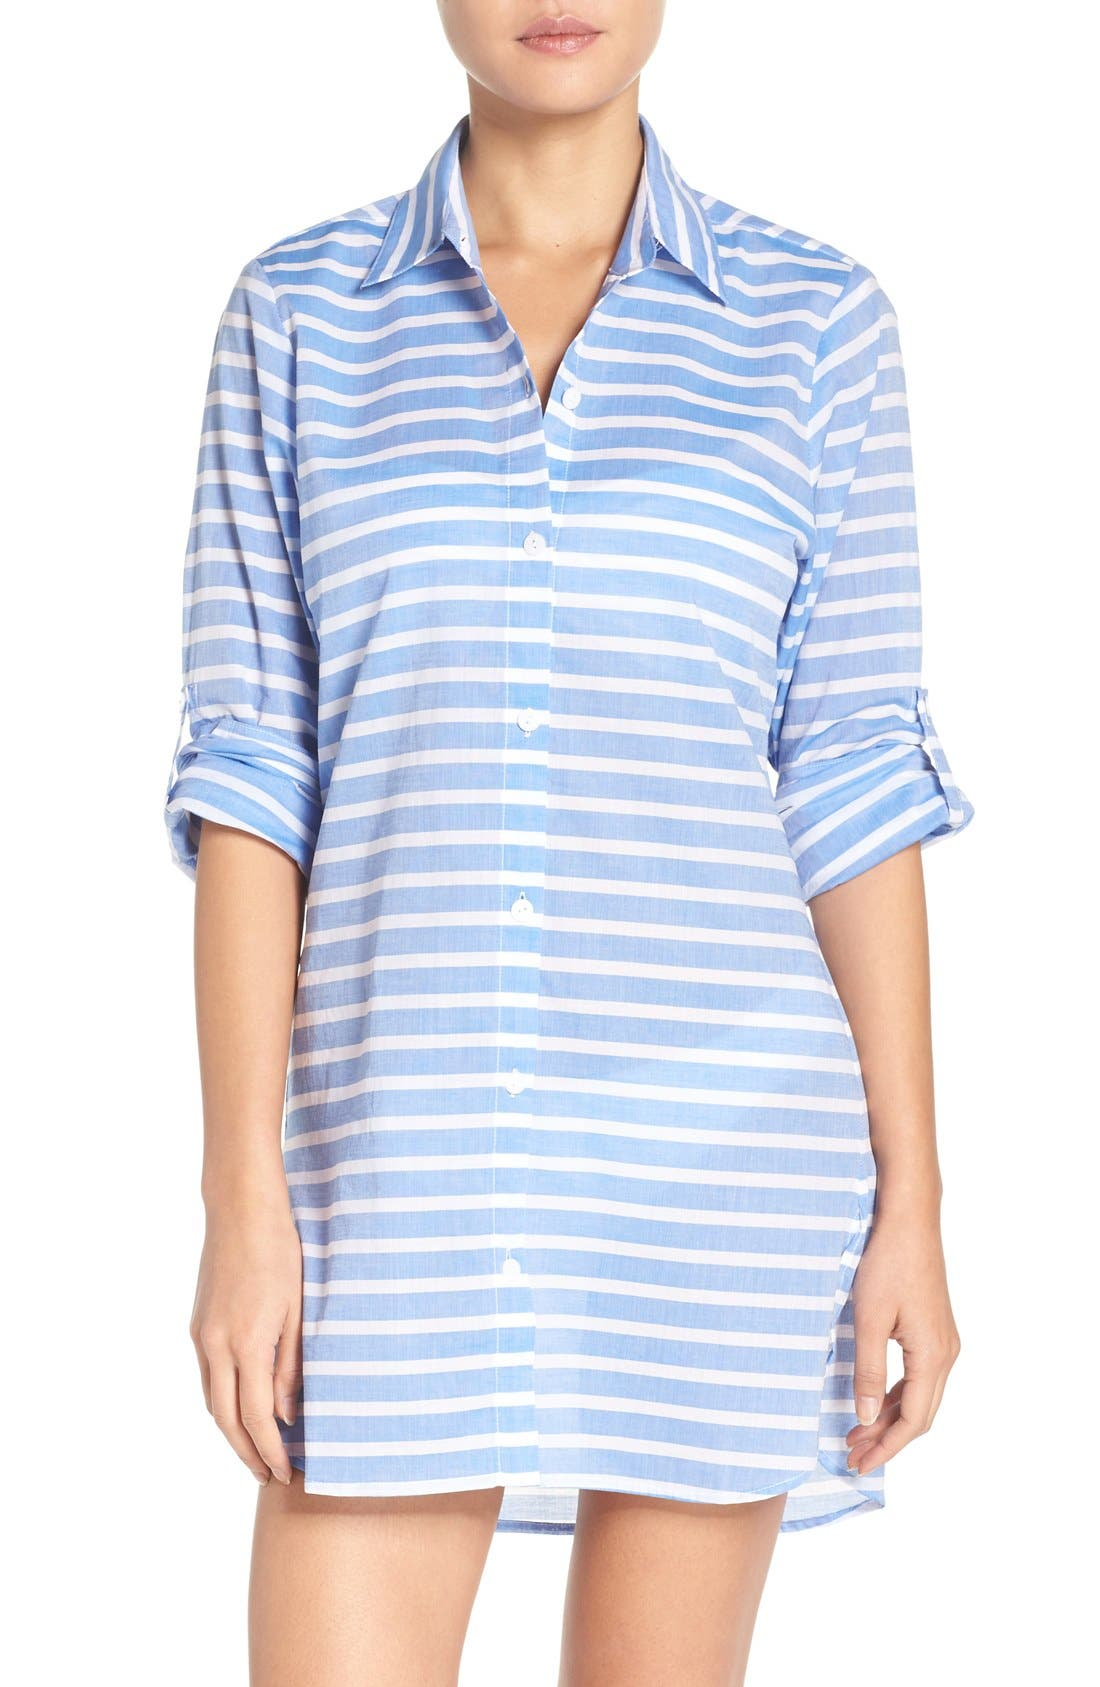 Main Image - Tommy Bahama Brenton Stripe Boyfriend Shirt Cover-Up